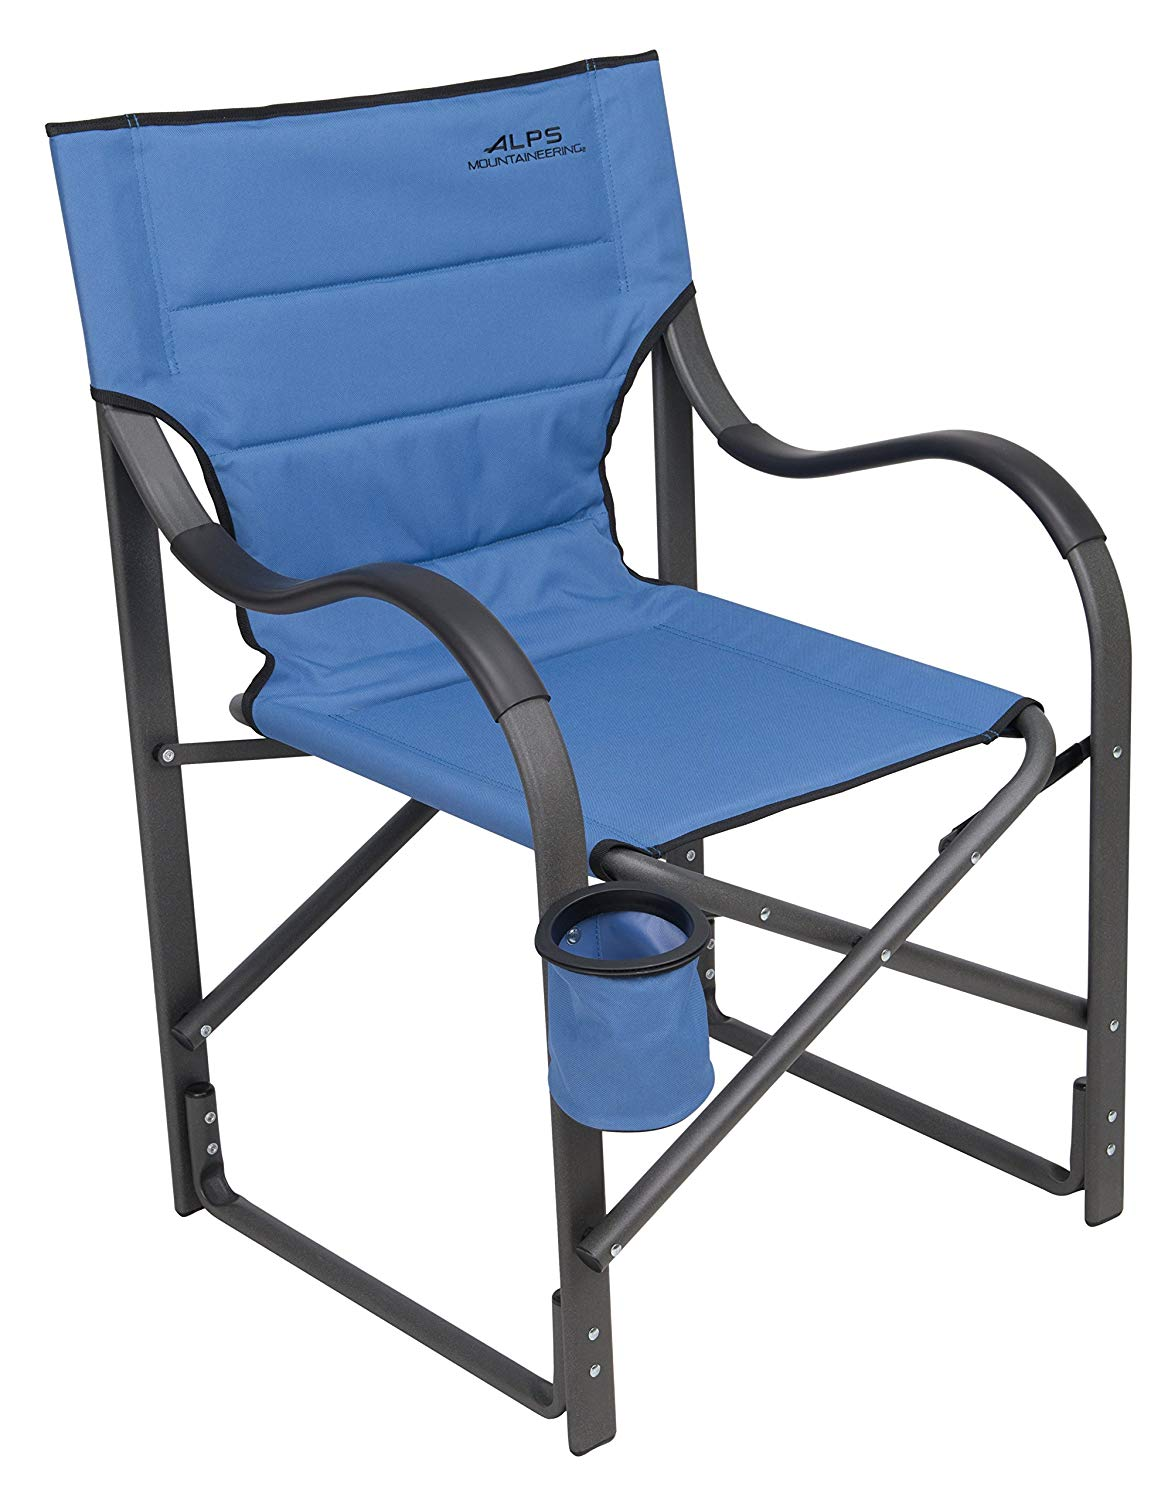 ALPS Mountaineering Camp Chair, Steel Blue